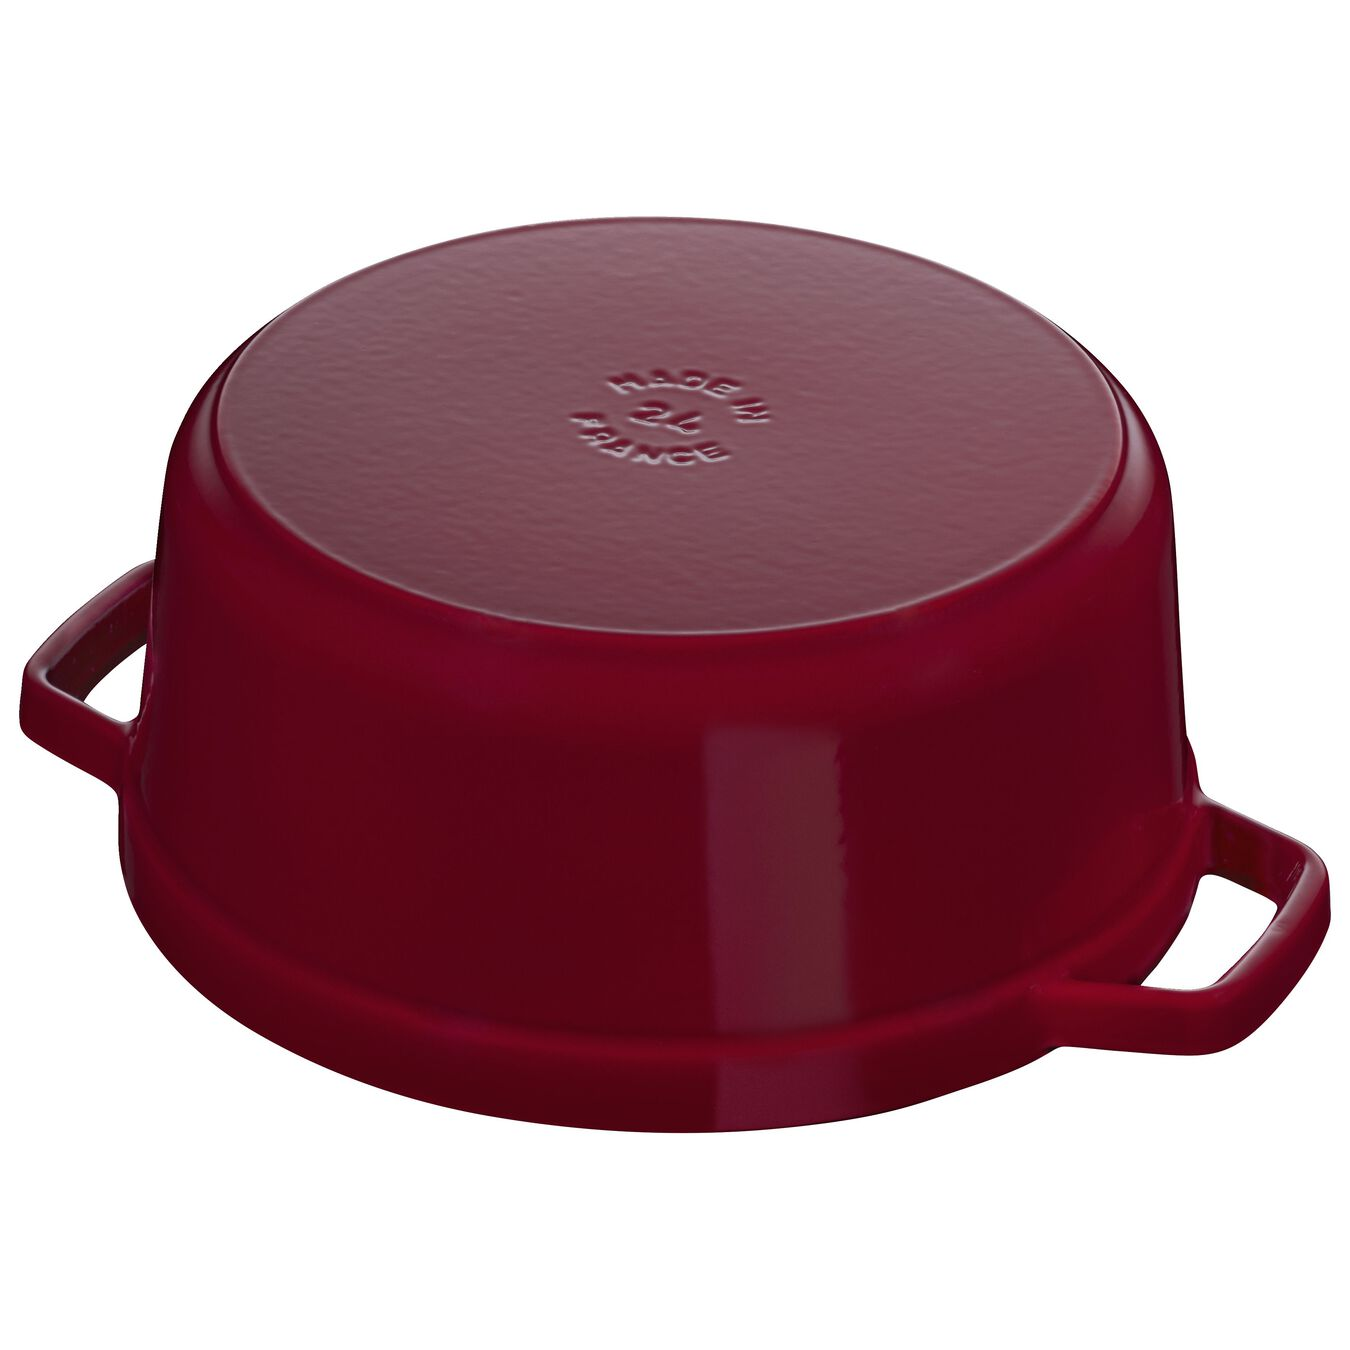 5.25 l Cast iron round Cocotte, Bordeaux,,large 4